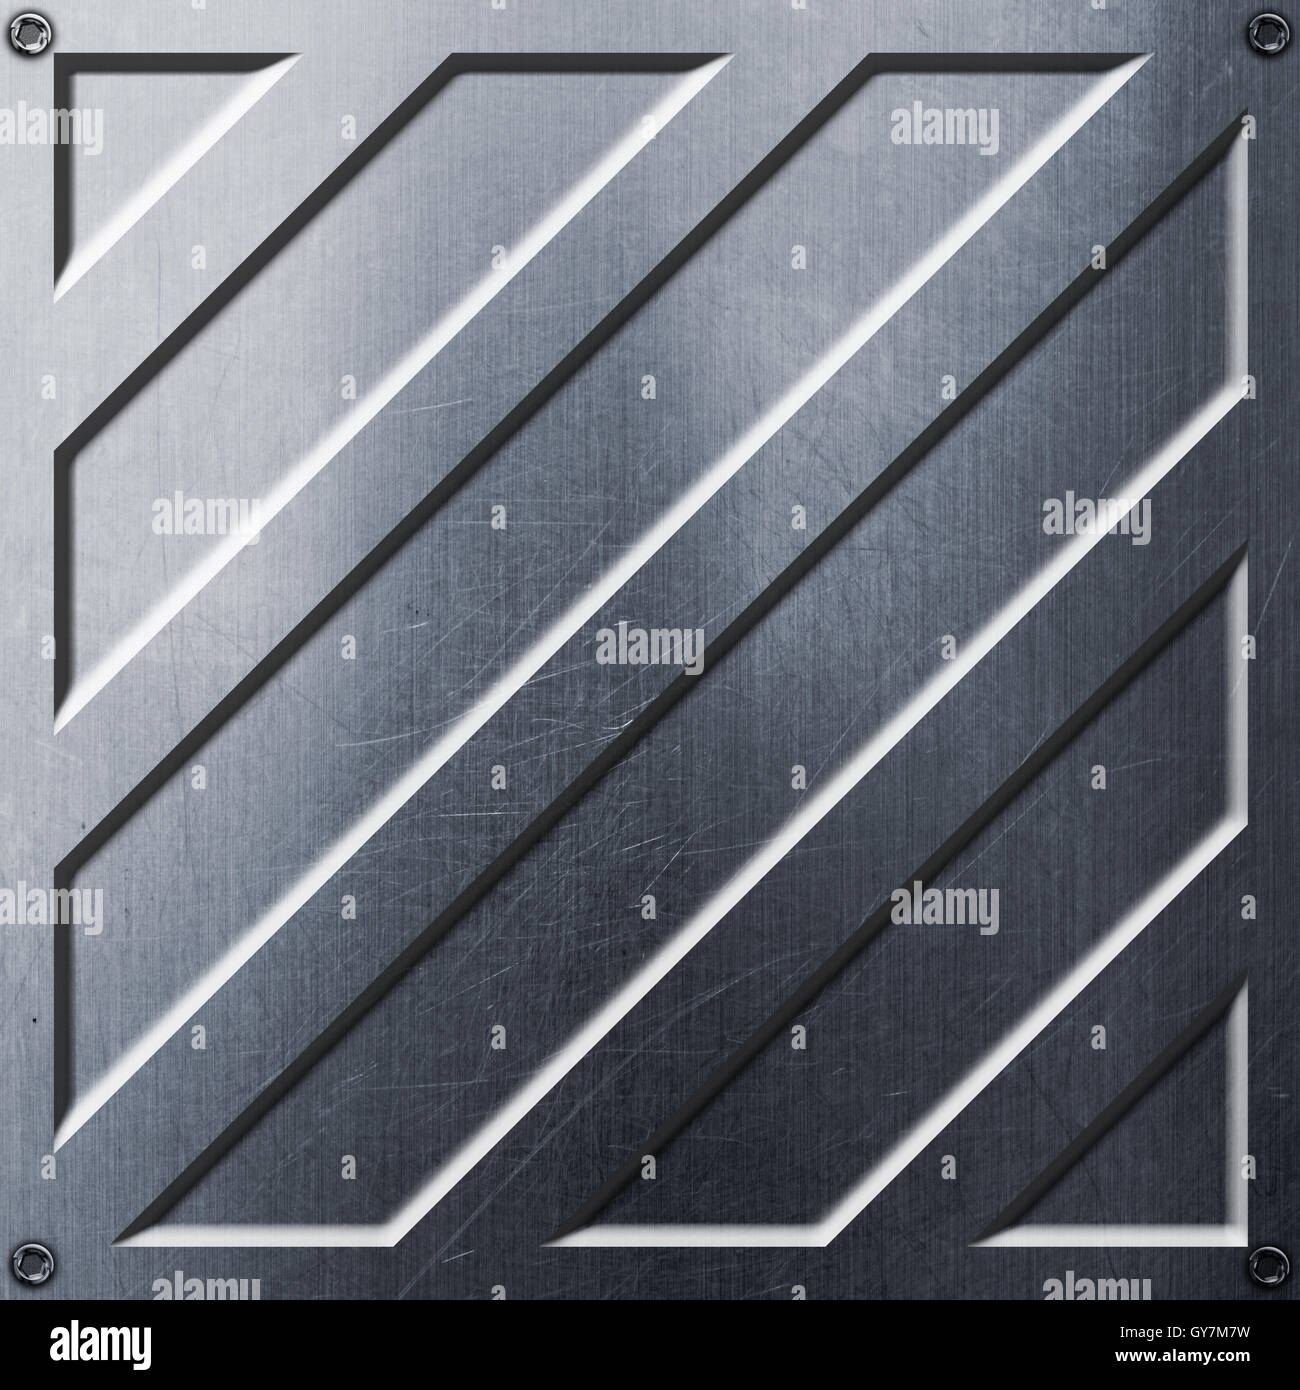 scifi wall. metal wall and rivet. metal background and texture 3d illustration. technology concept. - Stock Image